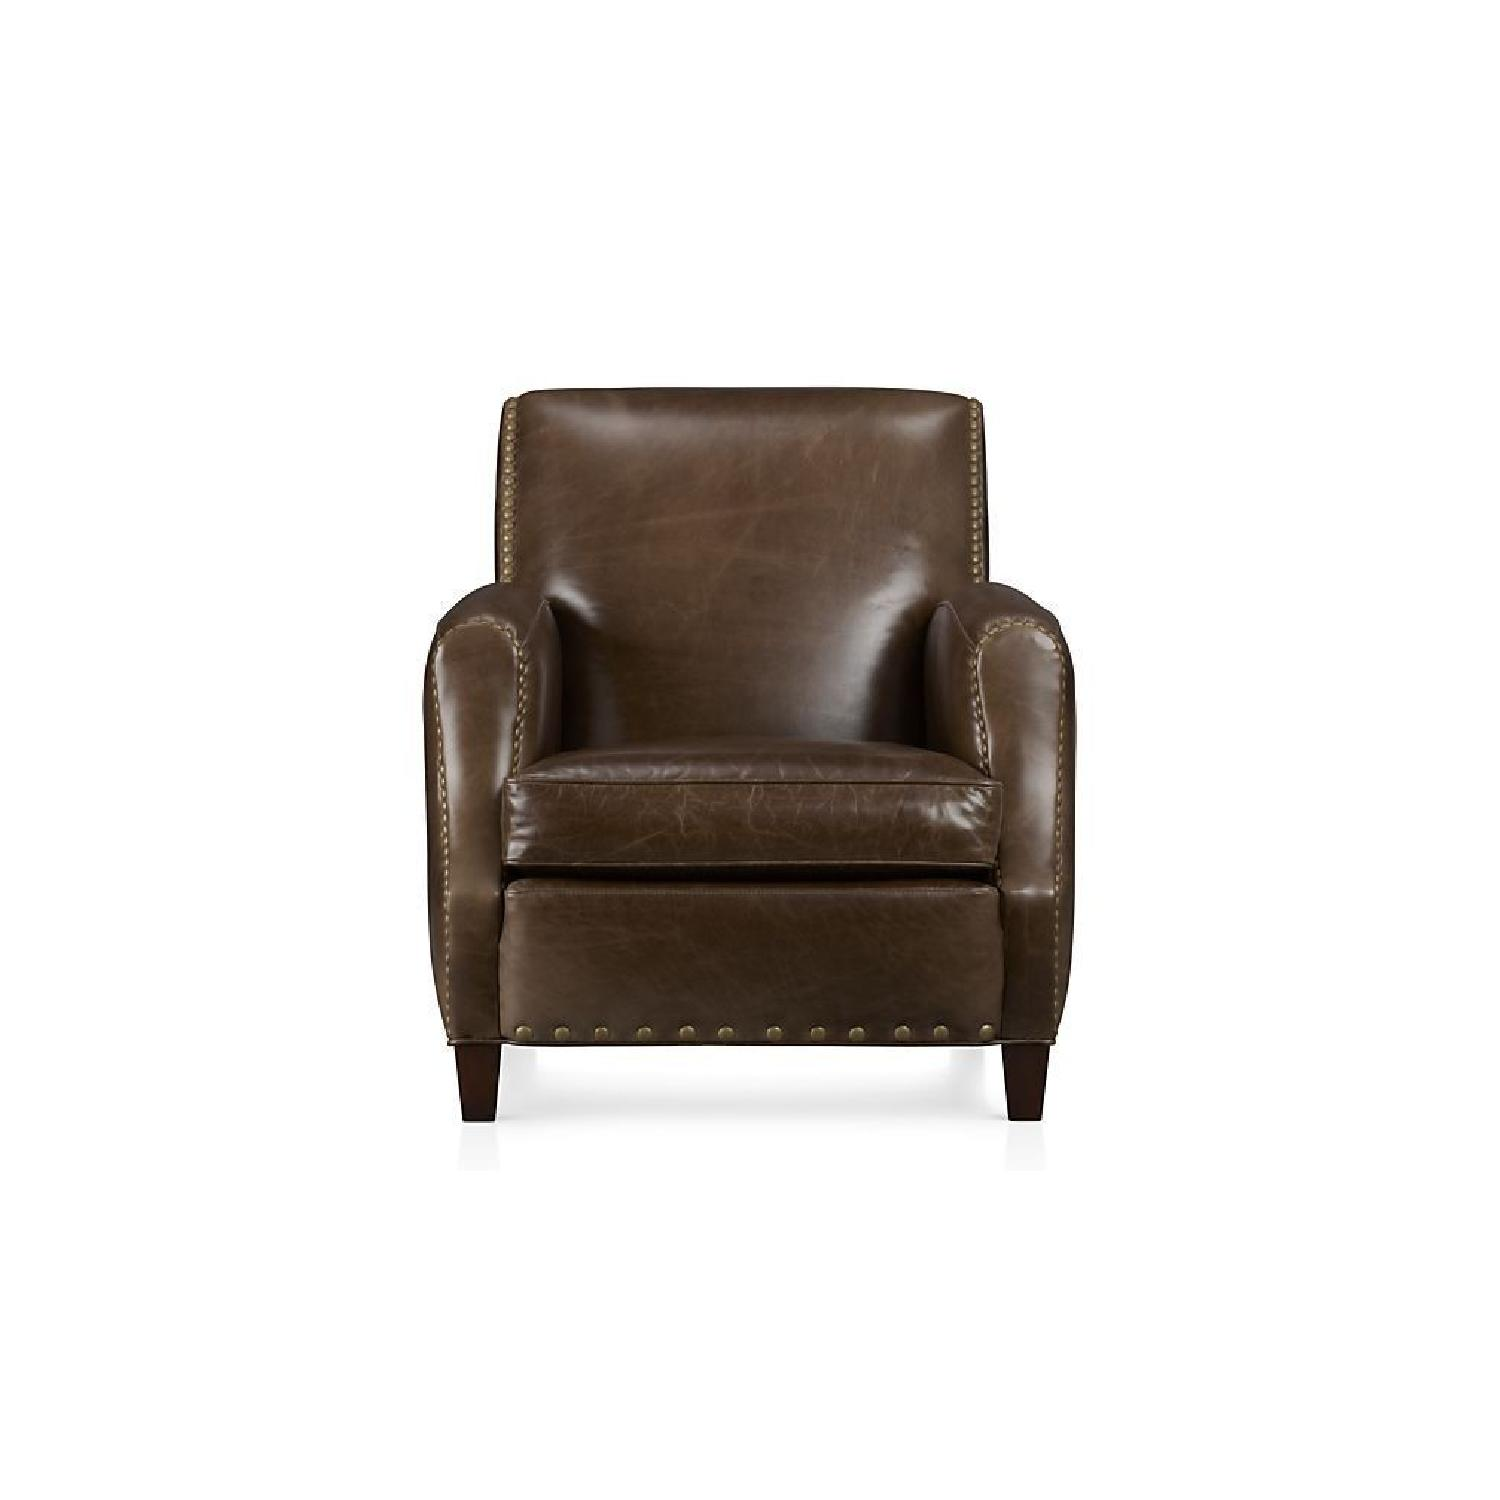 crate barrel metropole leather chair - Crate And Barrel Leather Chair